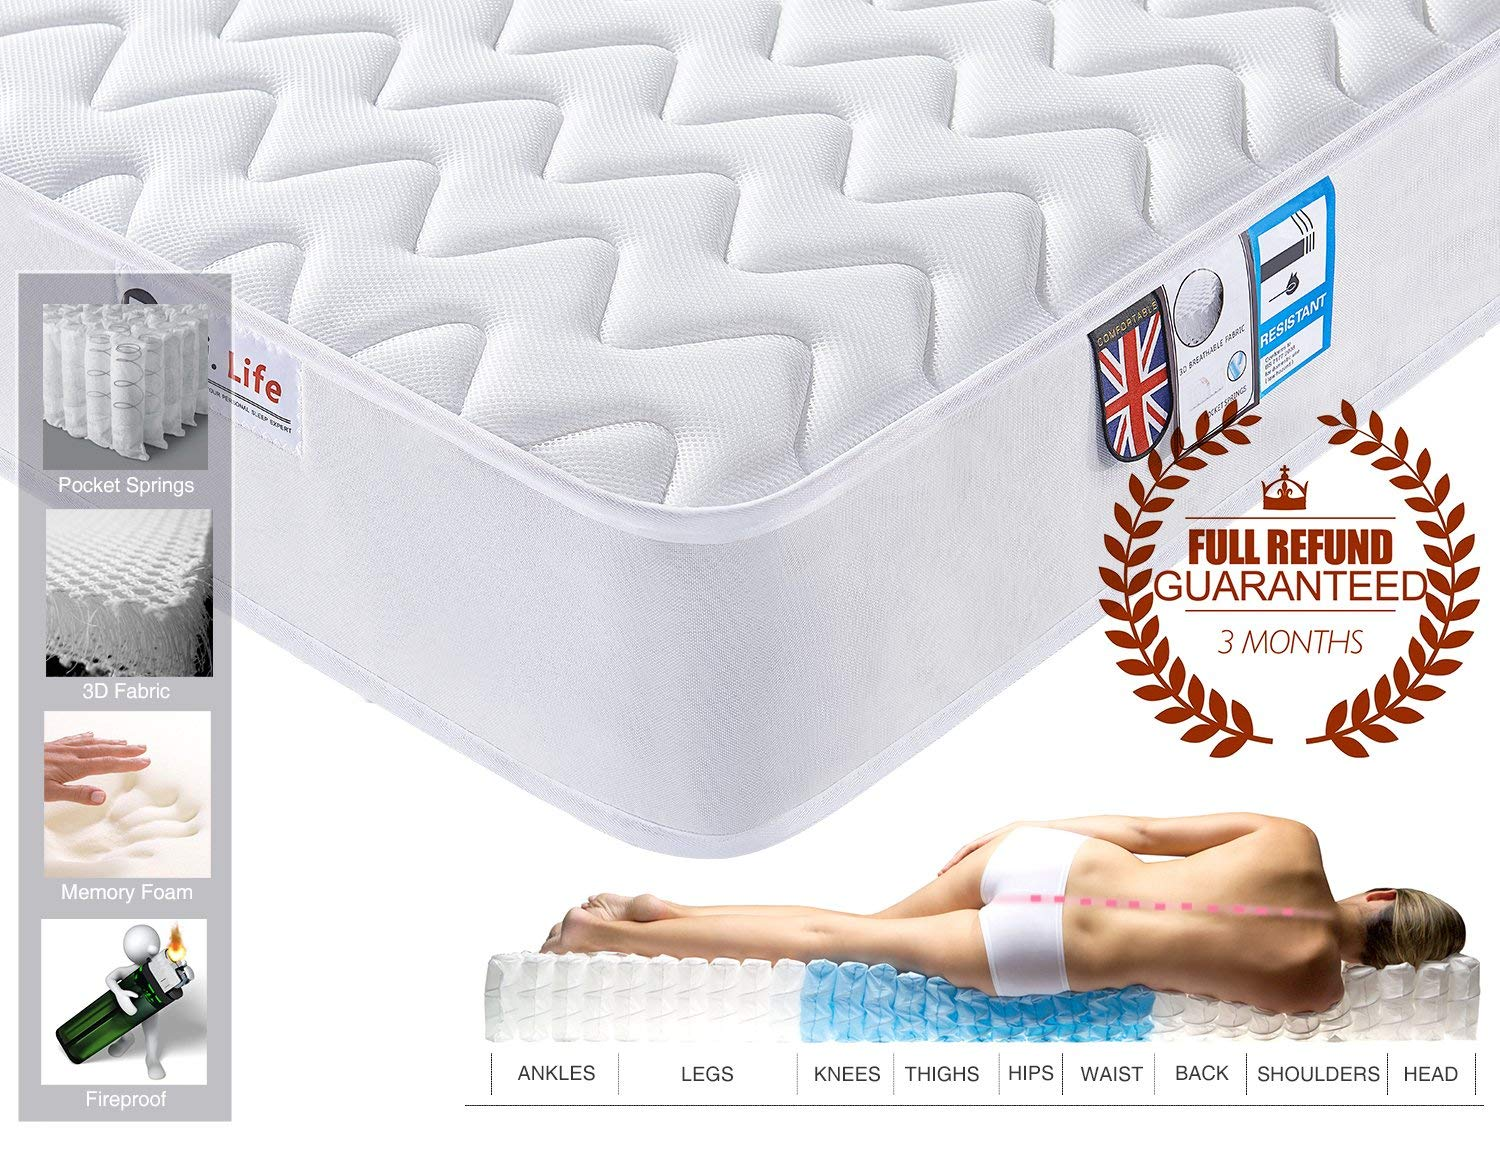 4FT Small Double 3D Breathable Fabric Mattress with Pocket Springs and Memory Foam - 9-Zone Orthopaedic Mattress - 8.7-Inch – White